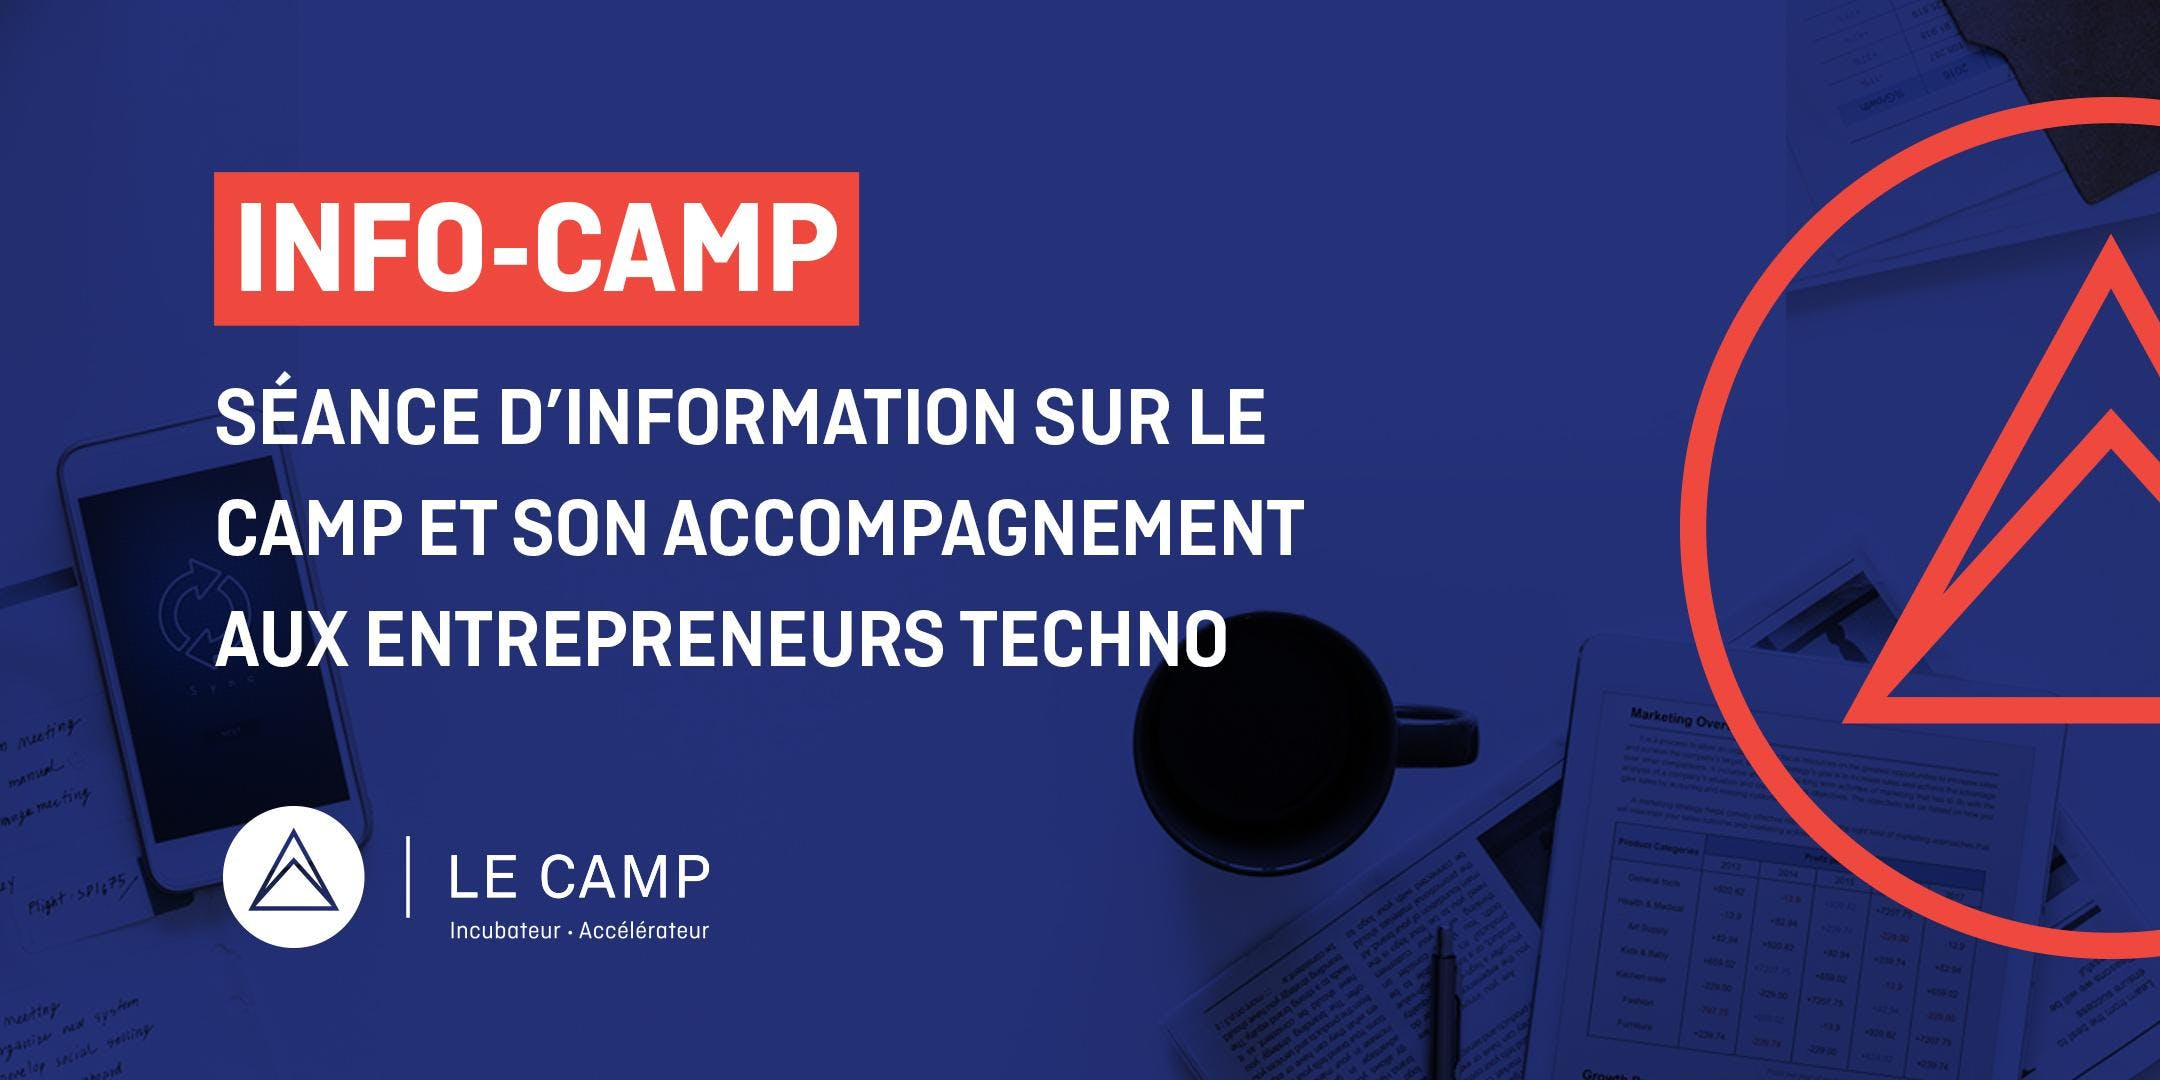 INFO CAMP - Séance d'information sur LE CAMP